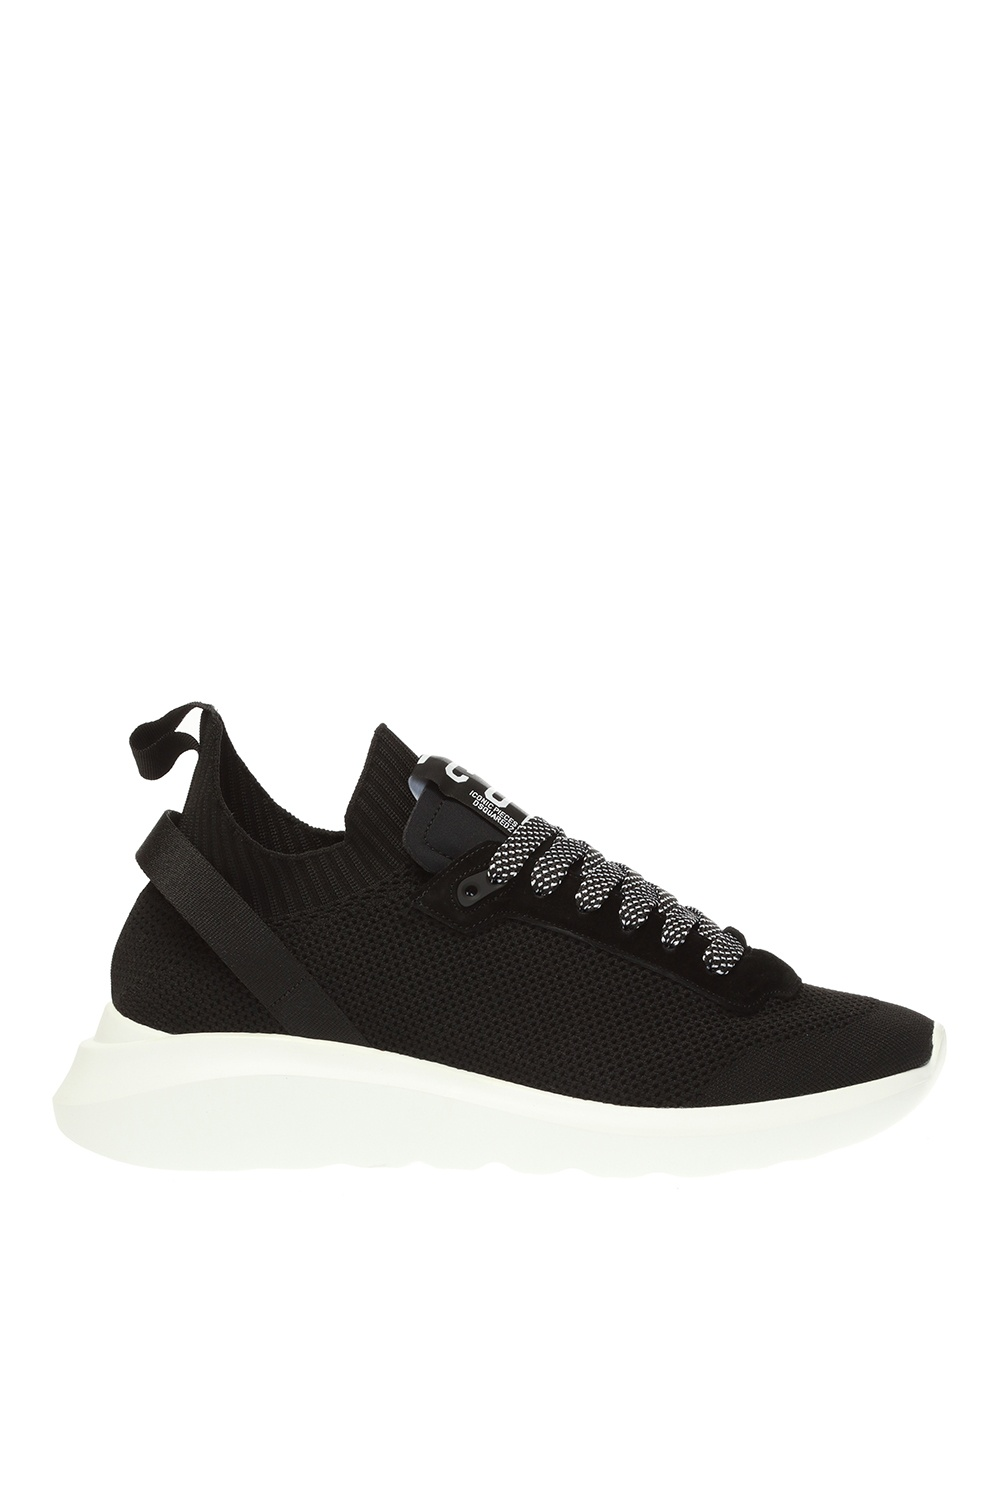 Dsquared2 'Speedster' sneakers with logo